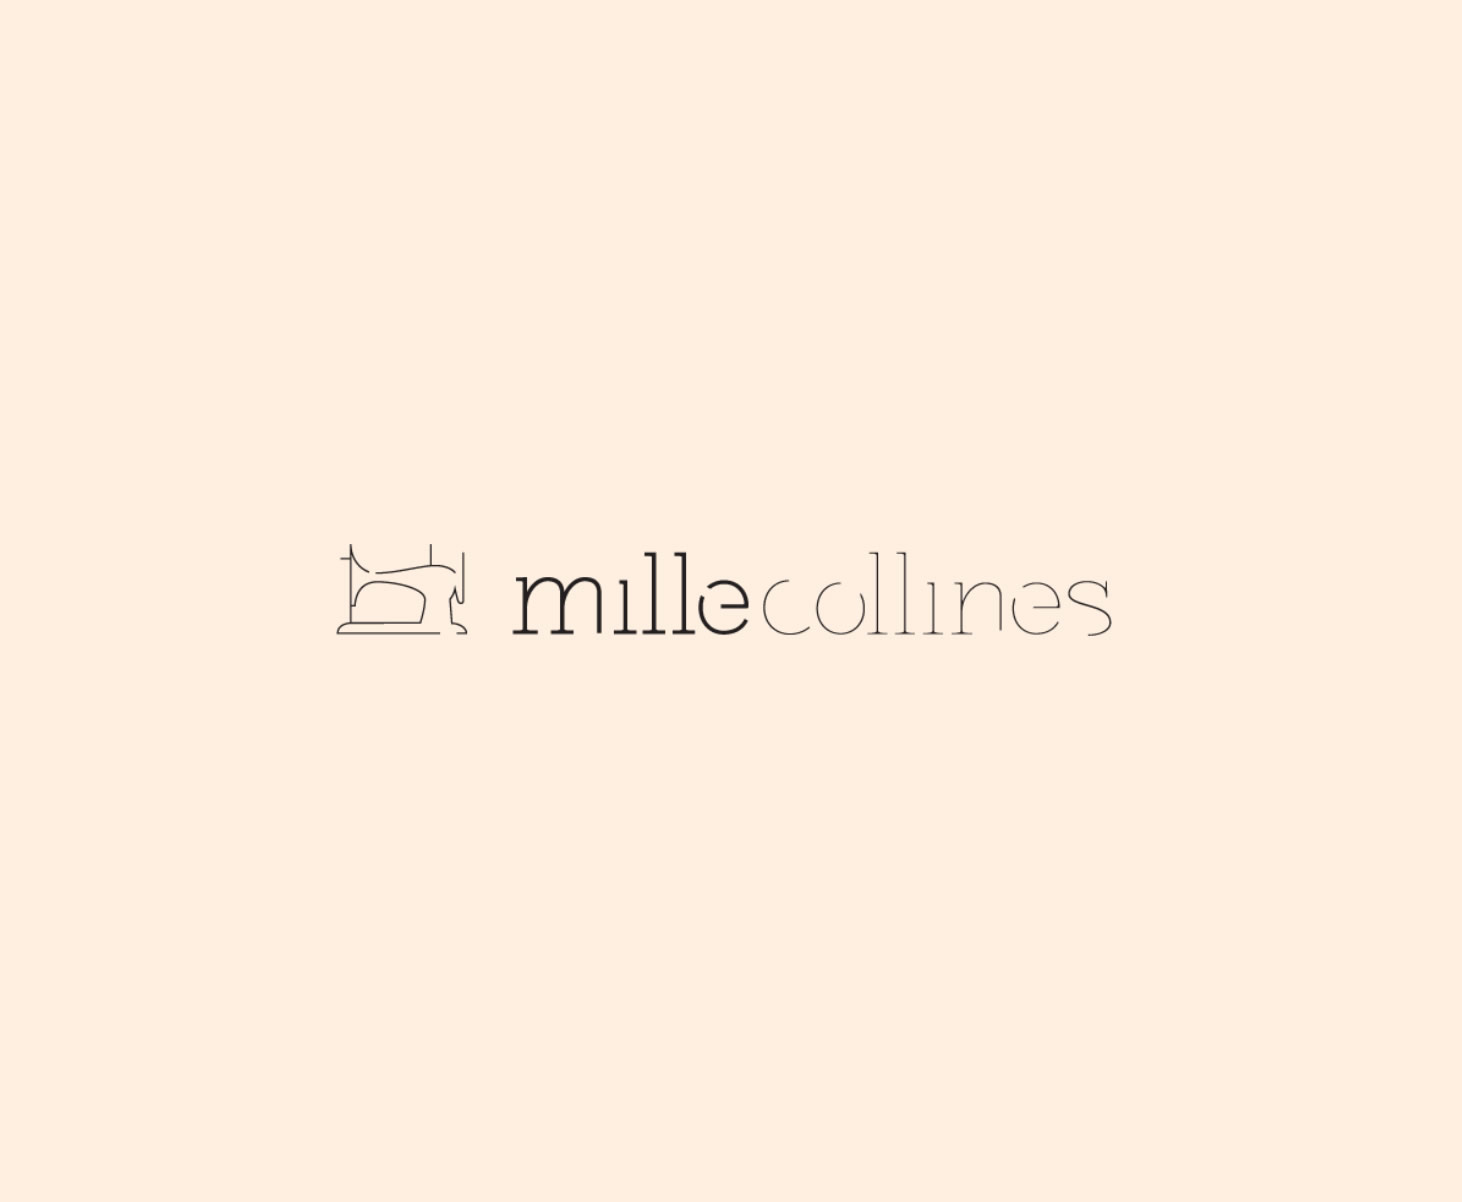 mille collines_1